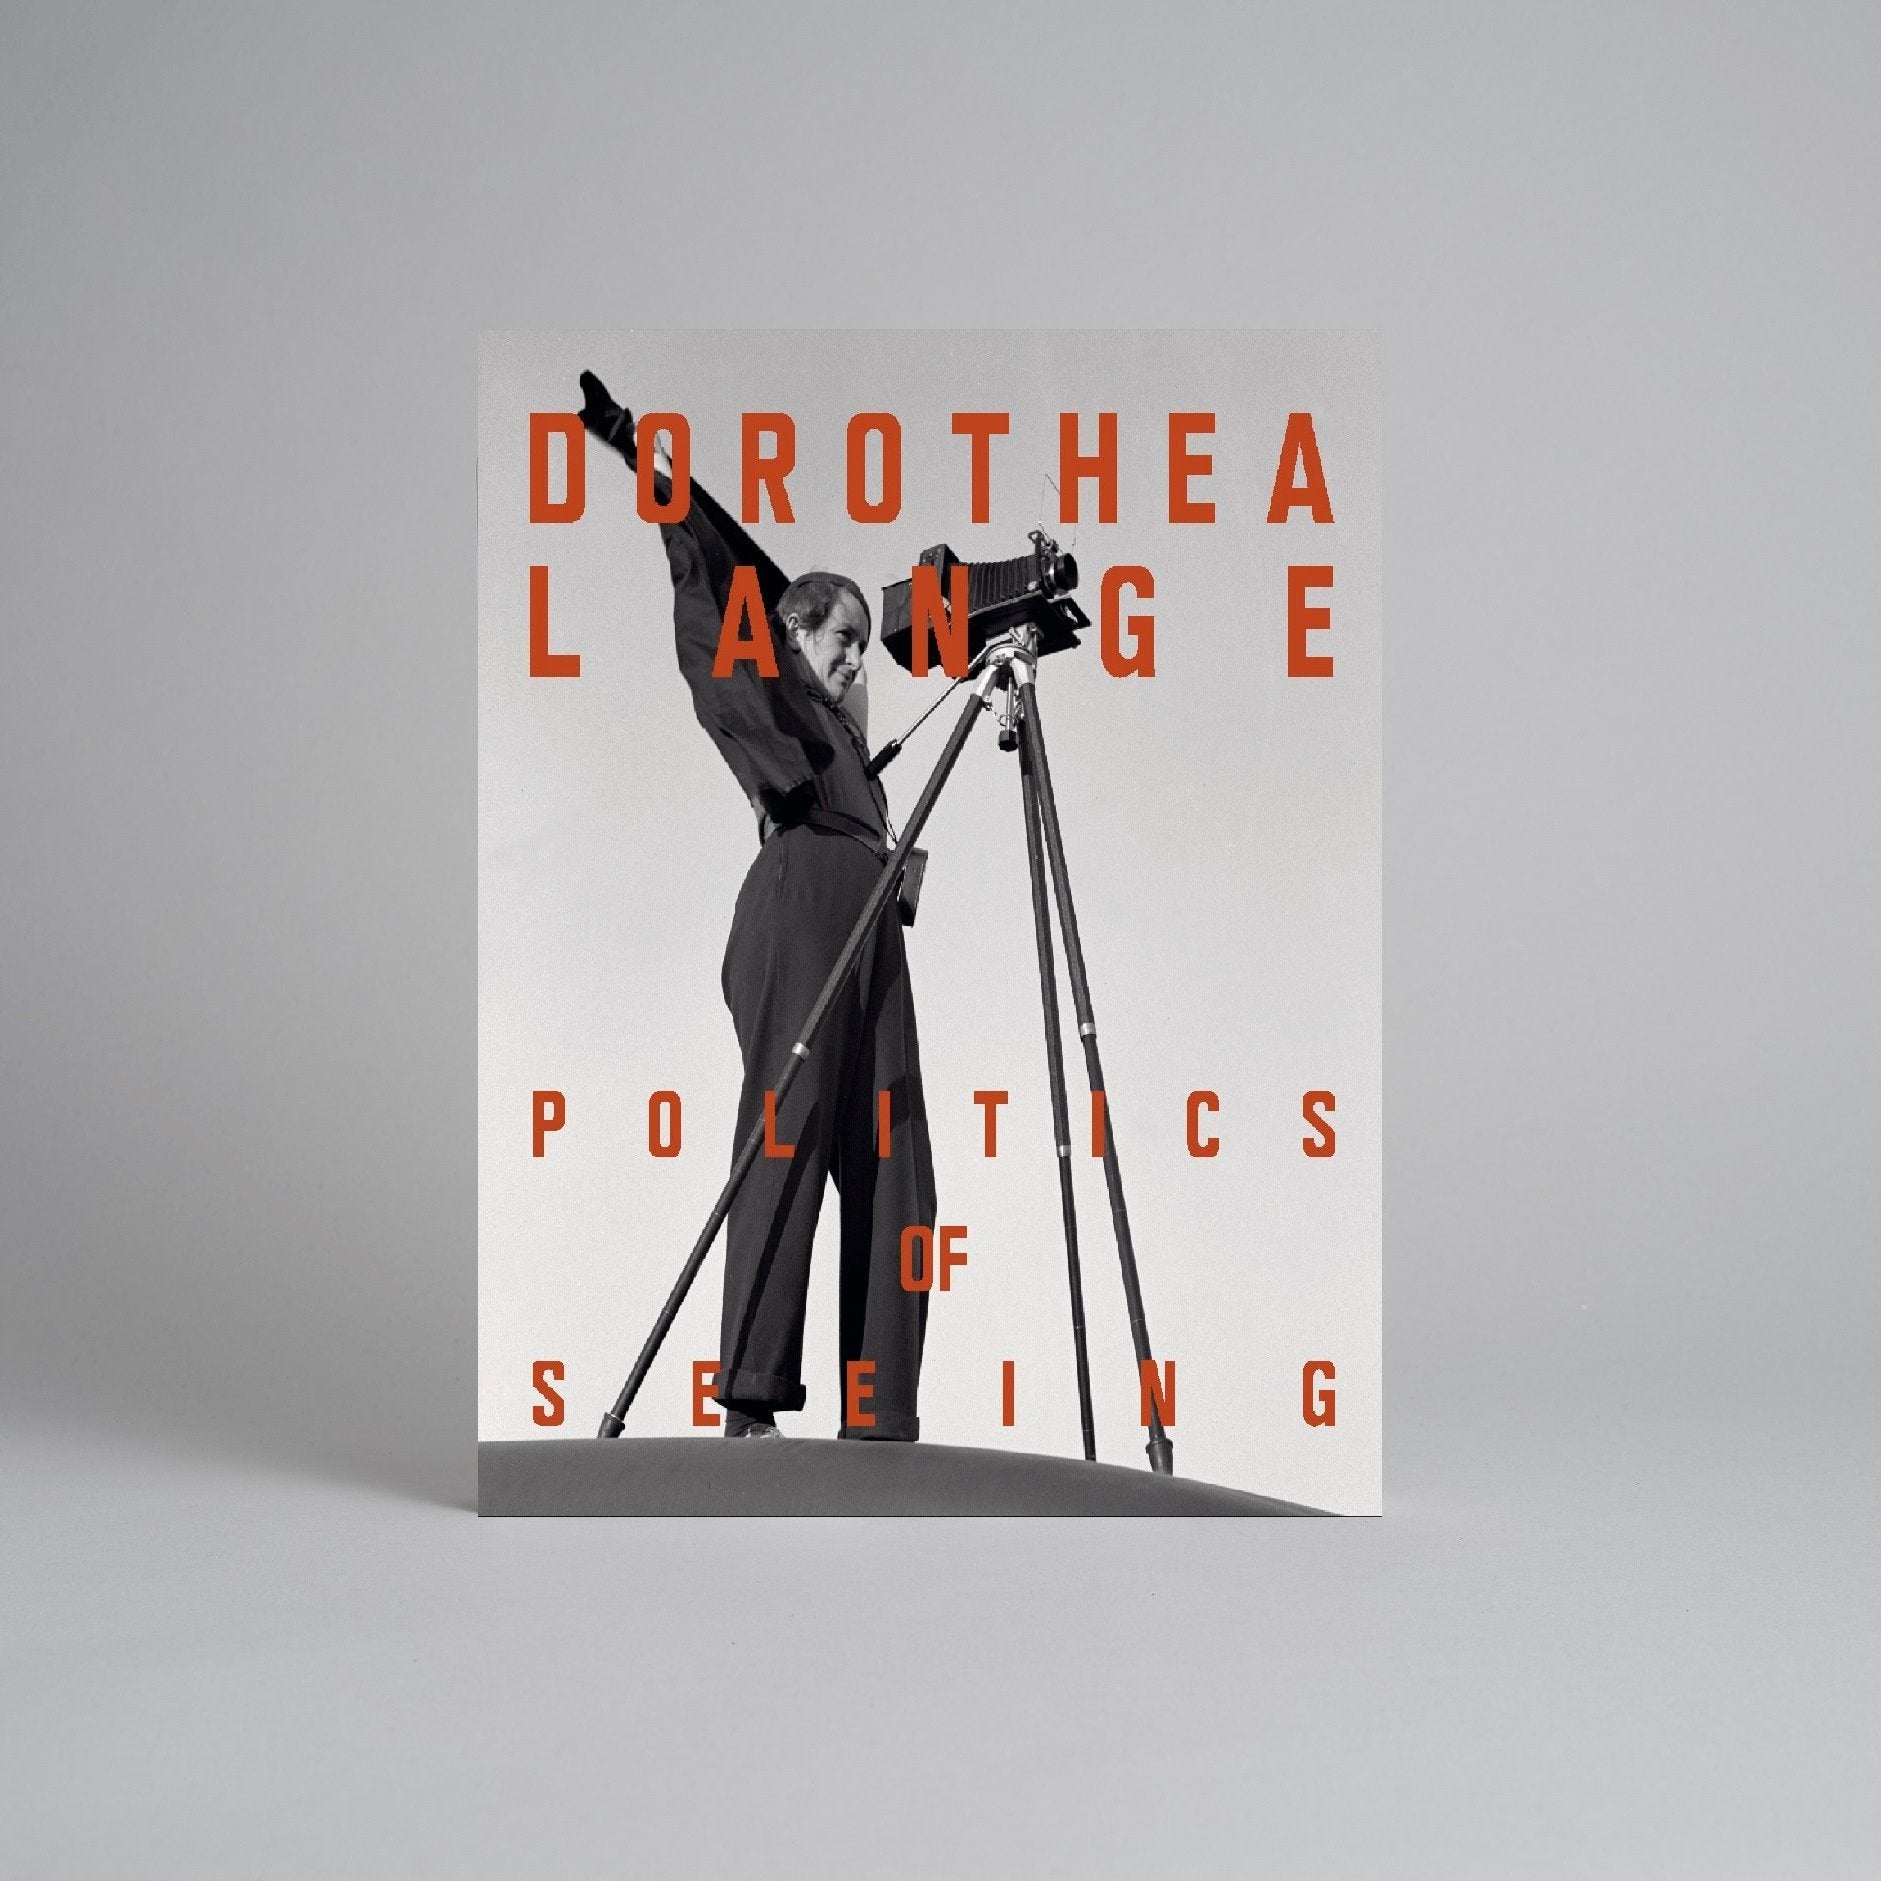 Dorothea Lange: Politics of Seeing Exhibition Catalogue